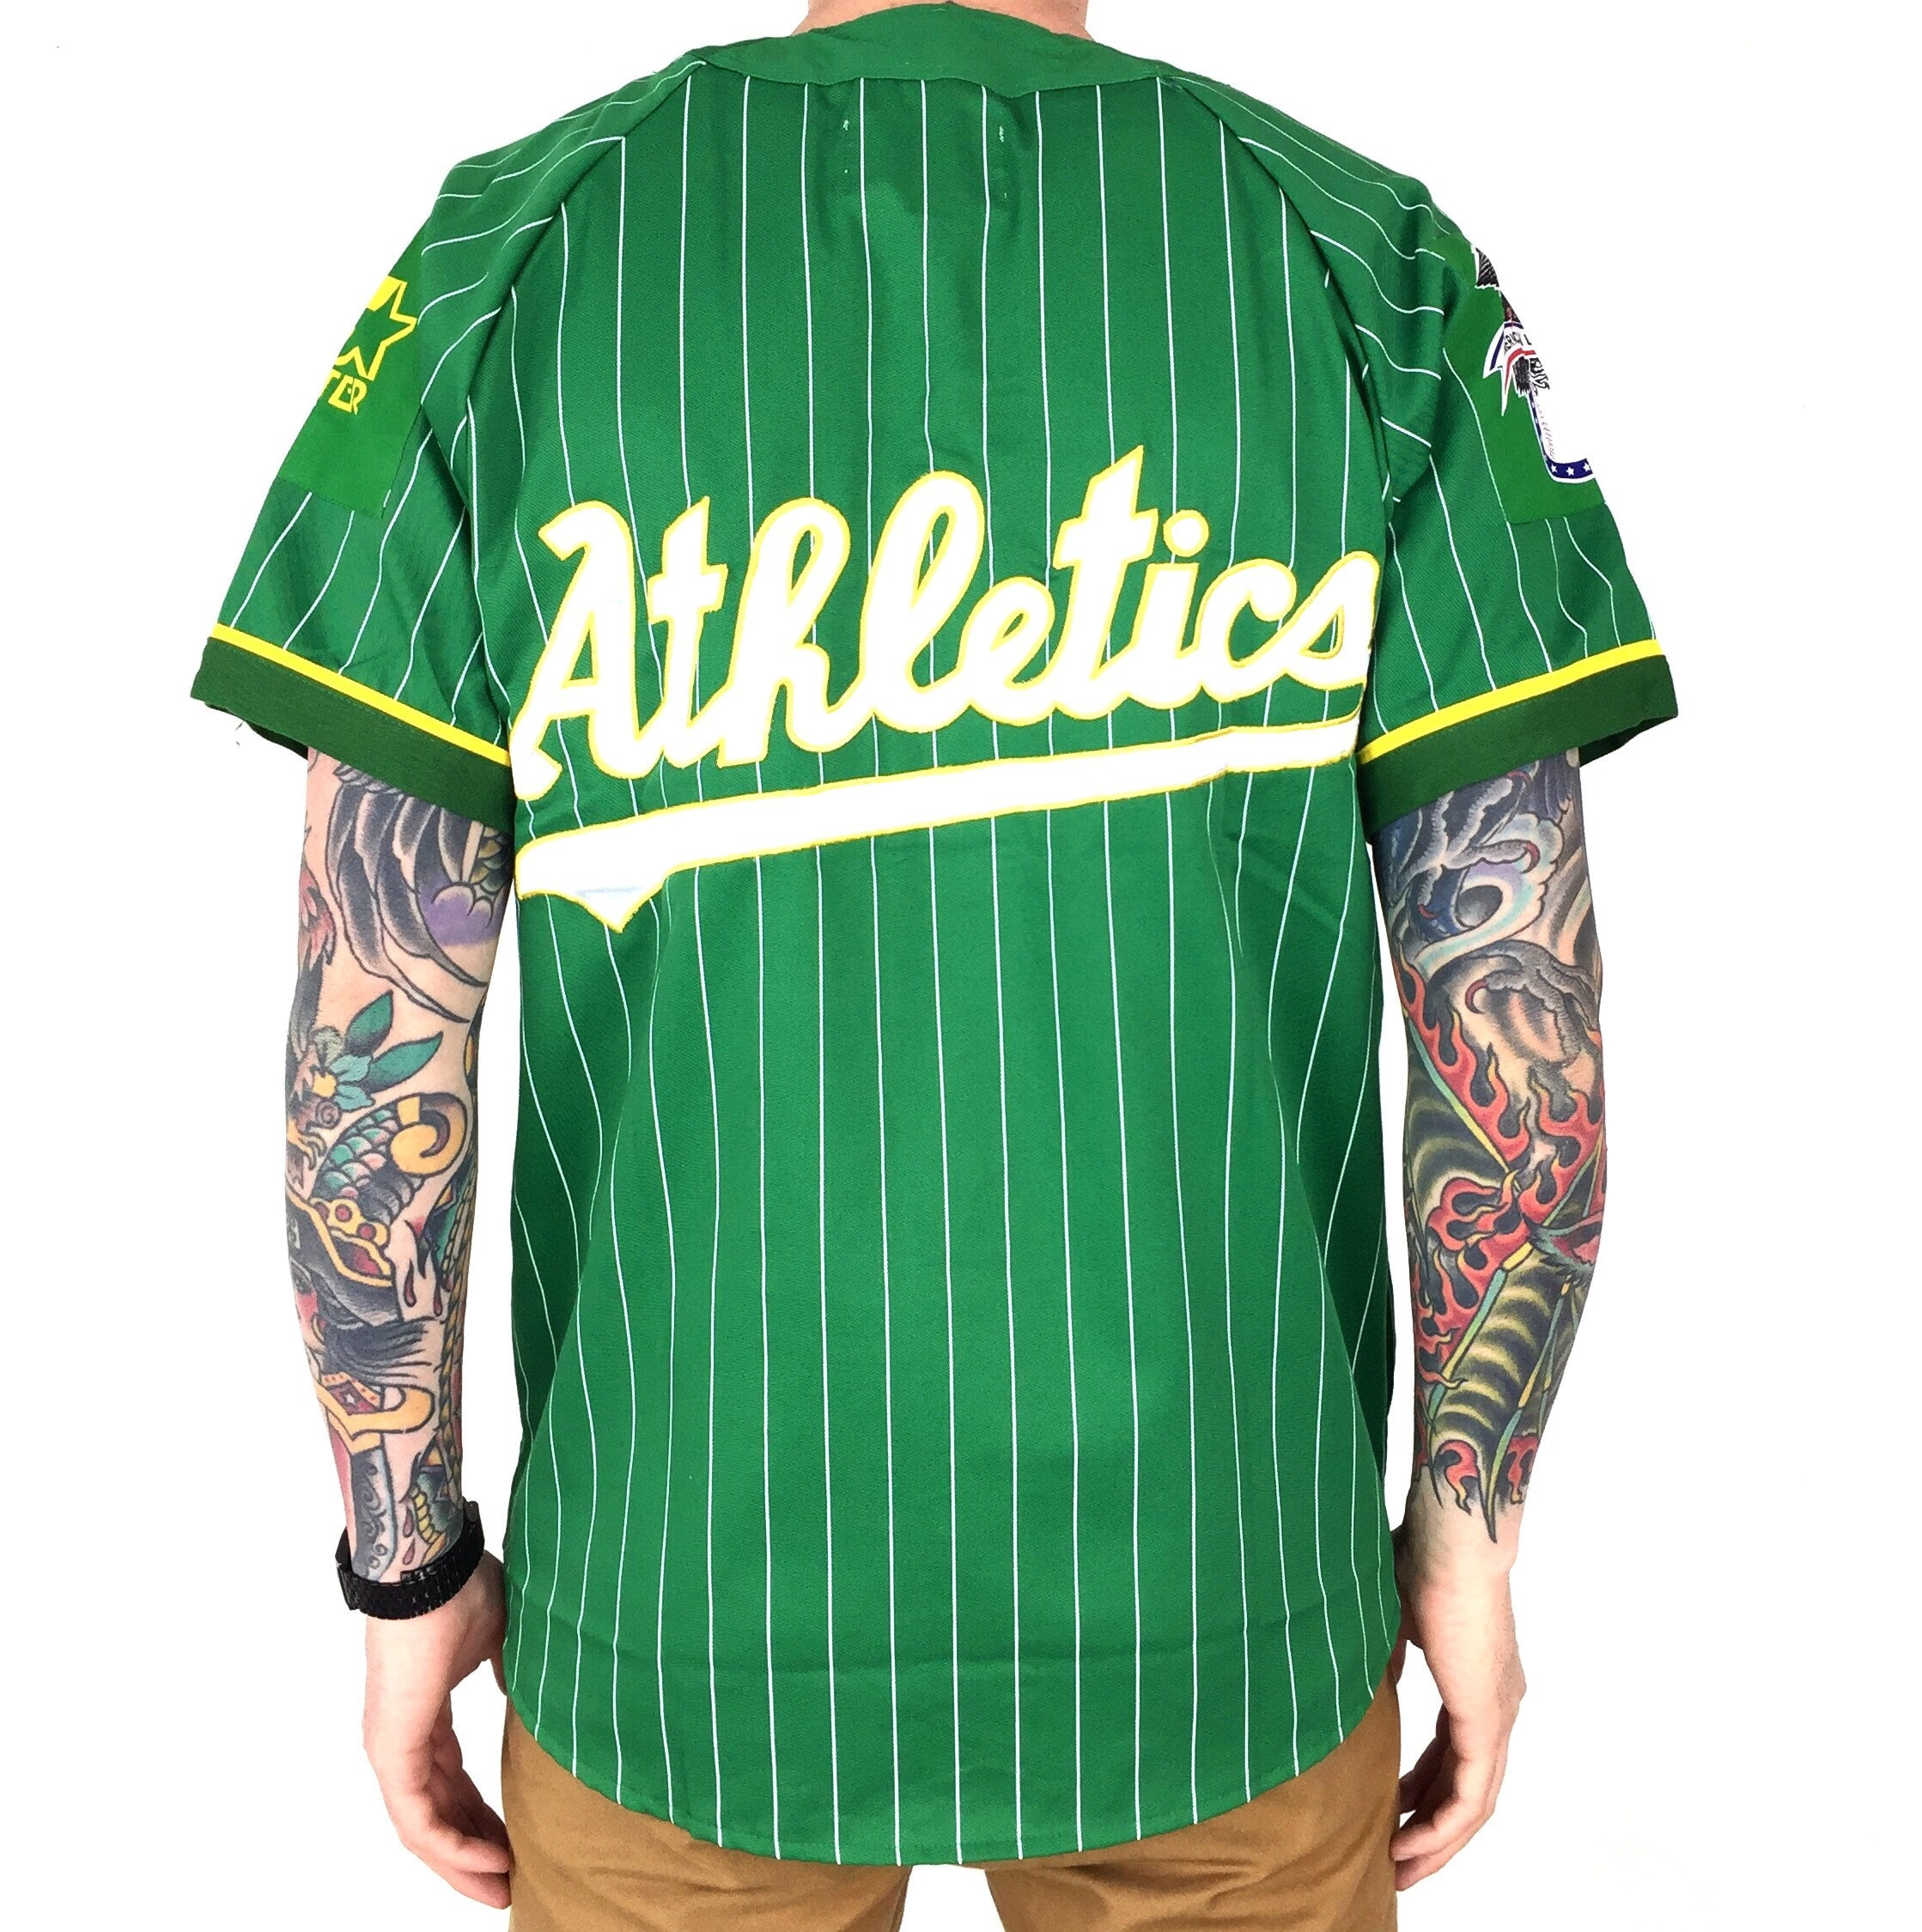 newest 2971a f5546 Rare Deadstock Vintage 90s Starter MLB Oakland A's Athletics ...